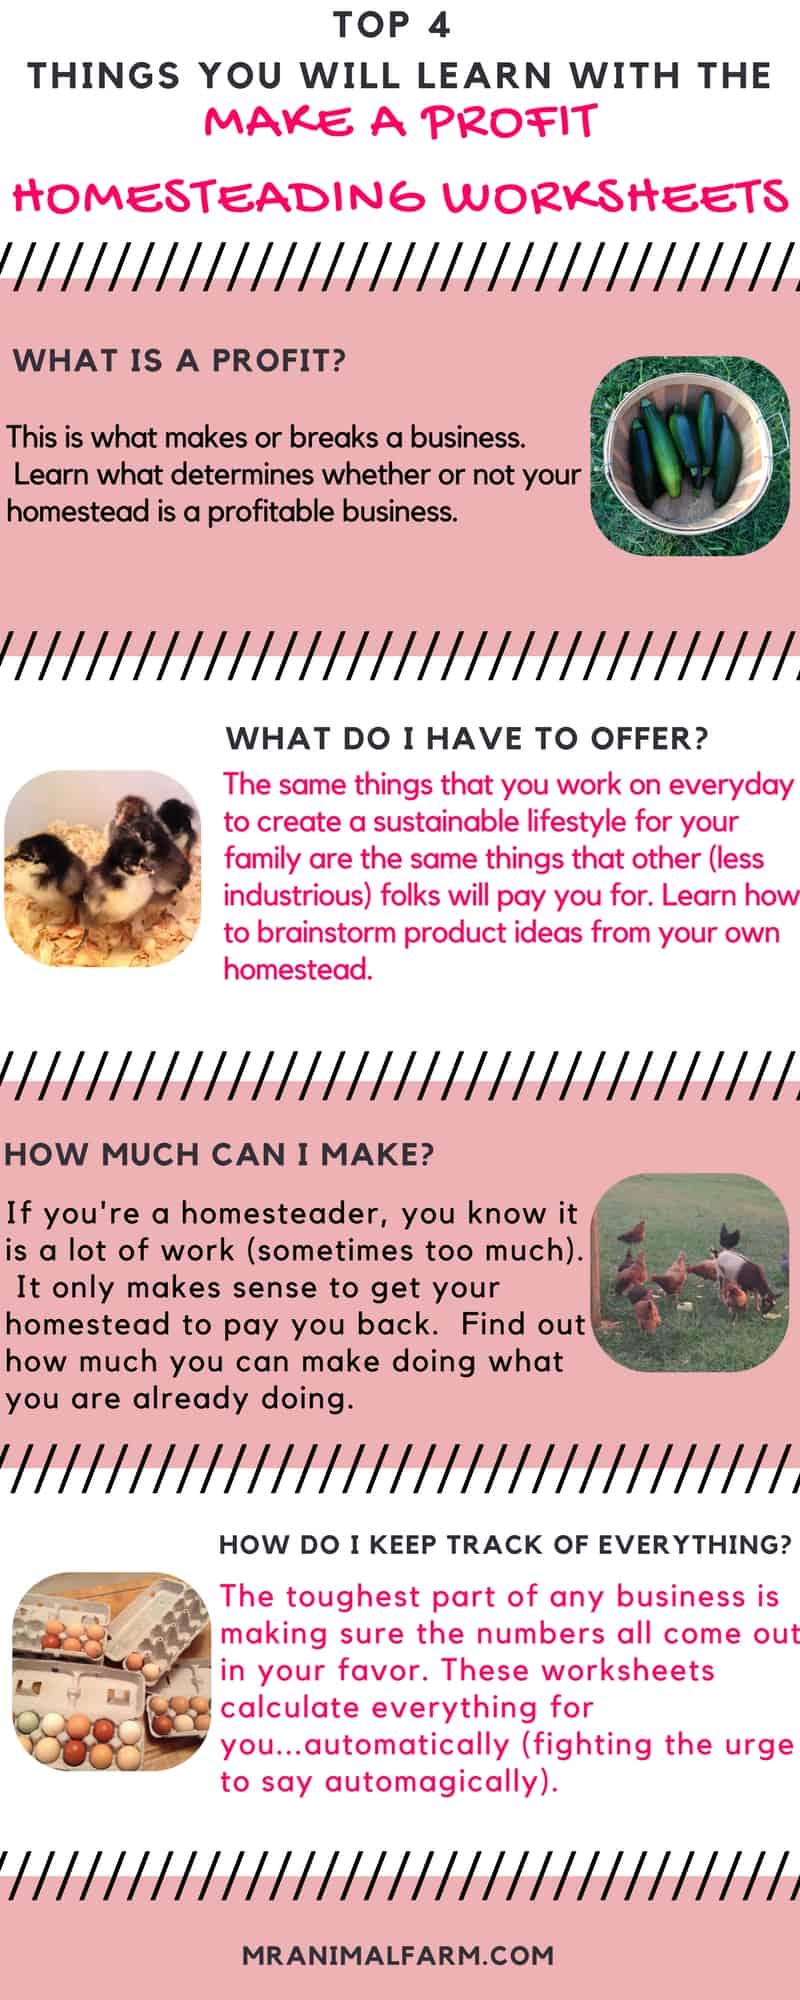 Profitable Homesteading Guide & Worksheets - Make Money Homesteading